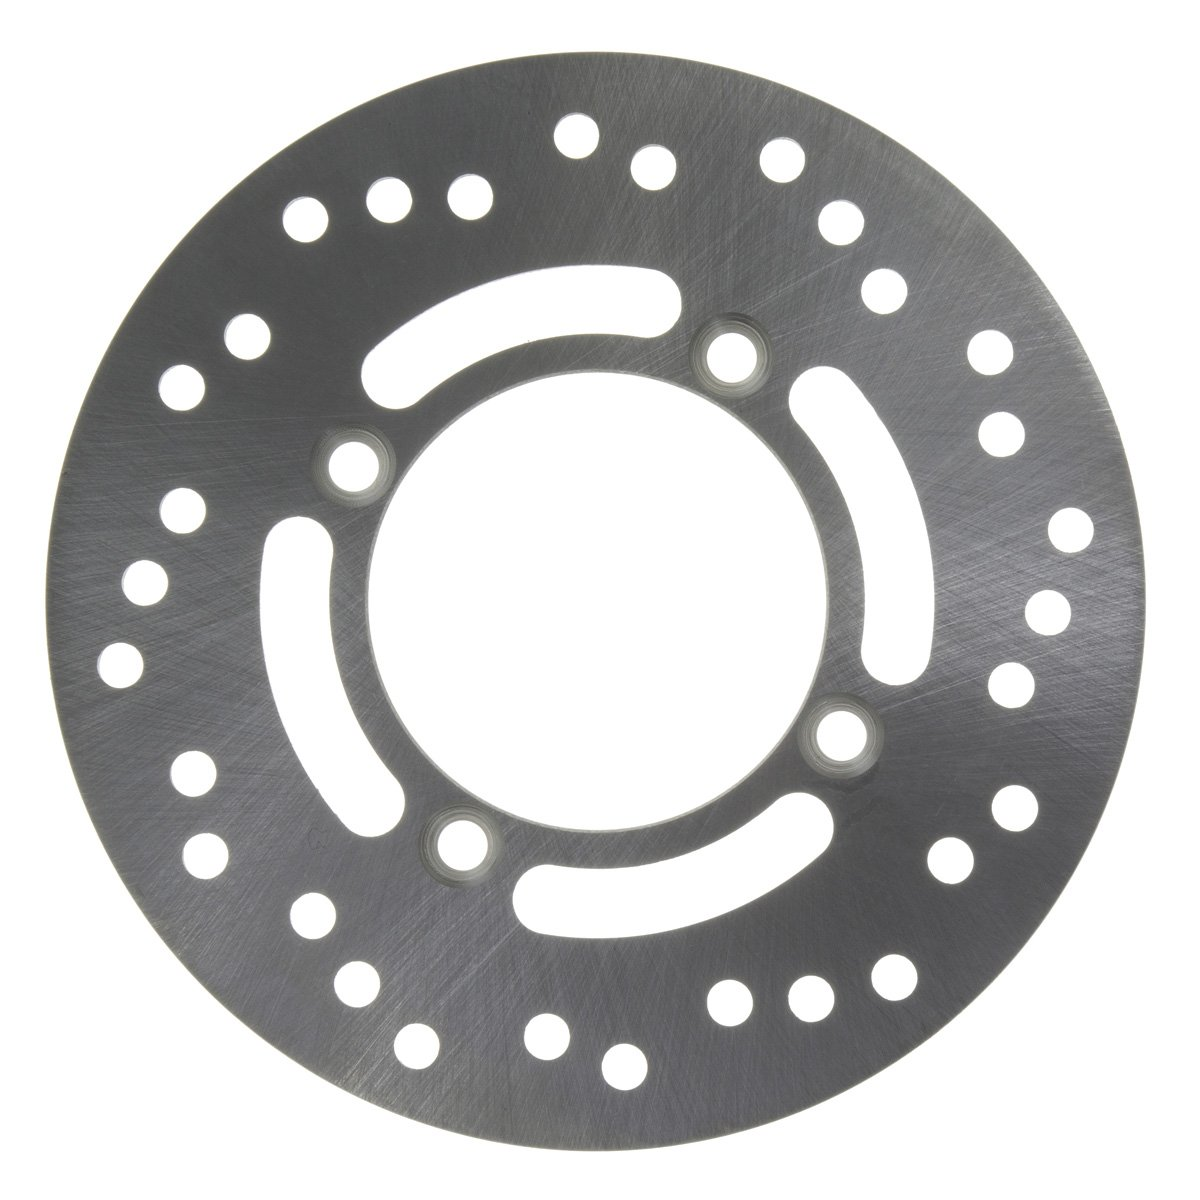 Rear Disc Brake Rotor 2000-2007 Bombardier Can-Am DS650 Factory Spec DS650 Baja /& DS650 Baja X DS650X FS-2098